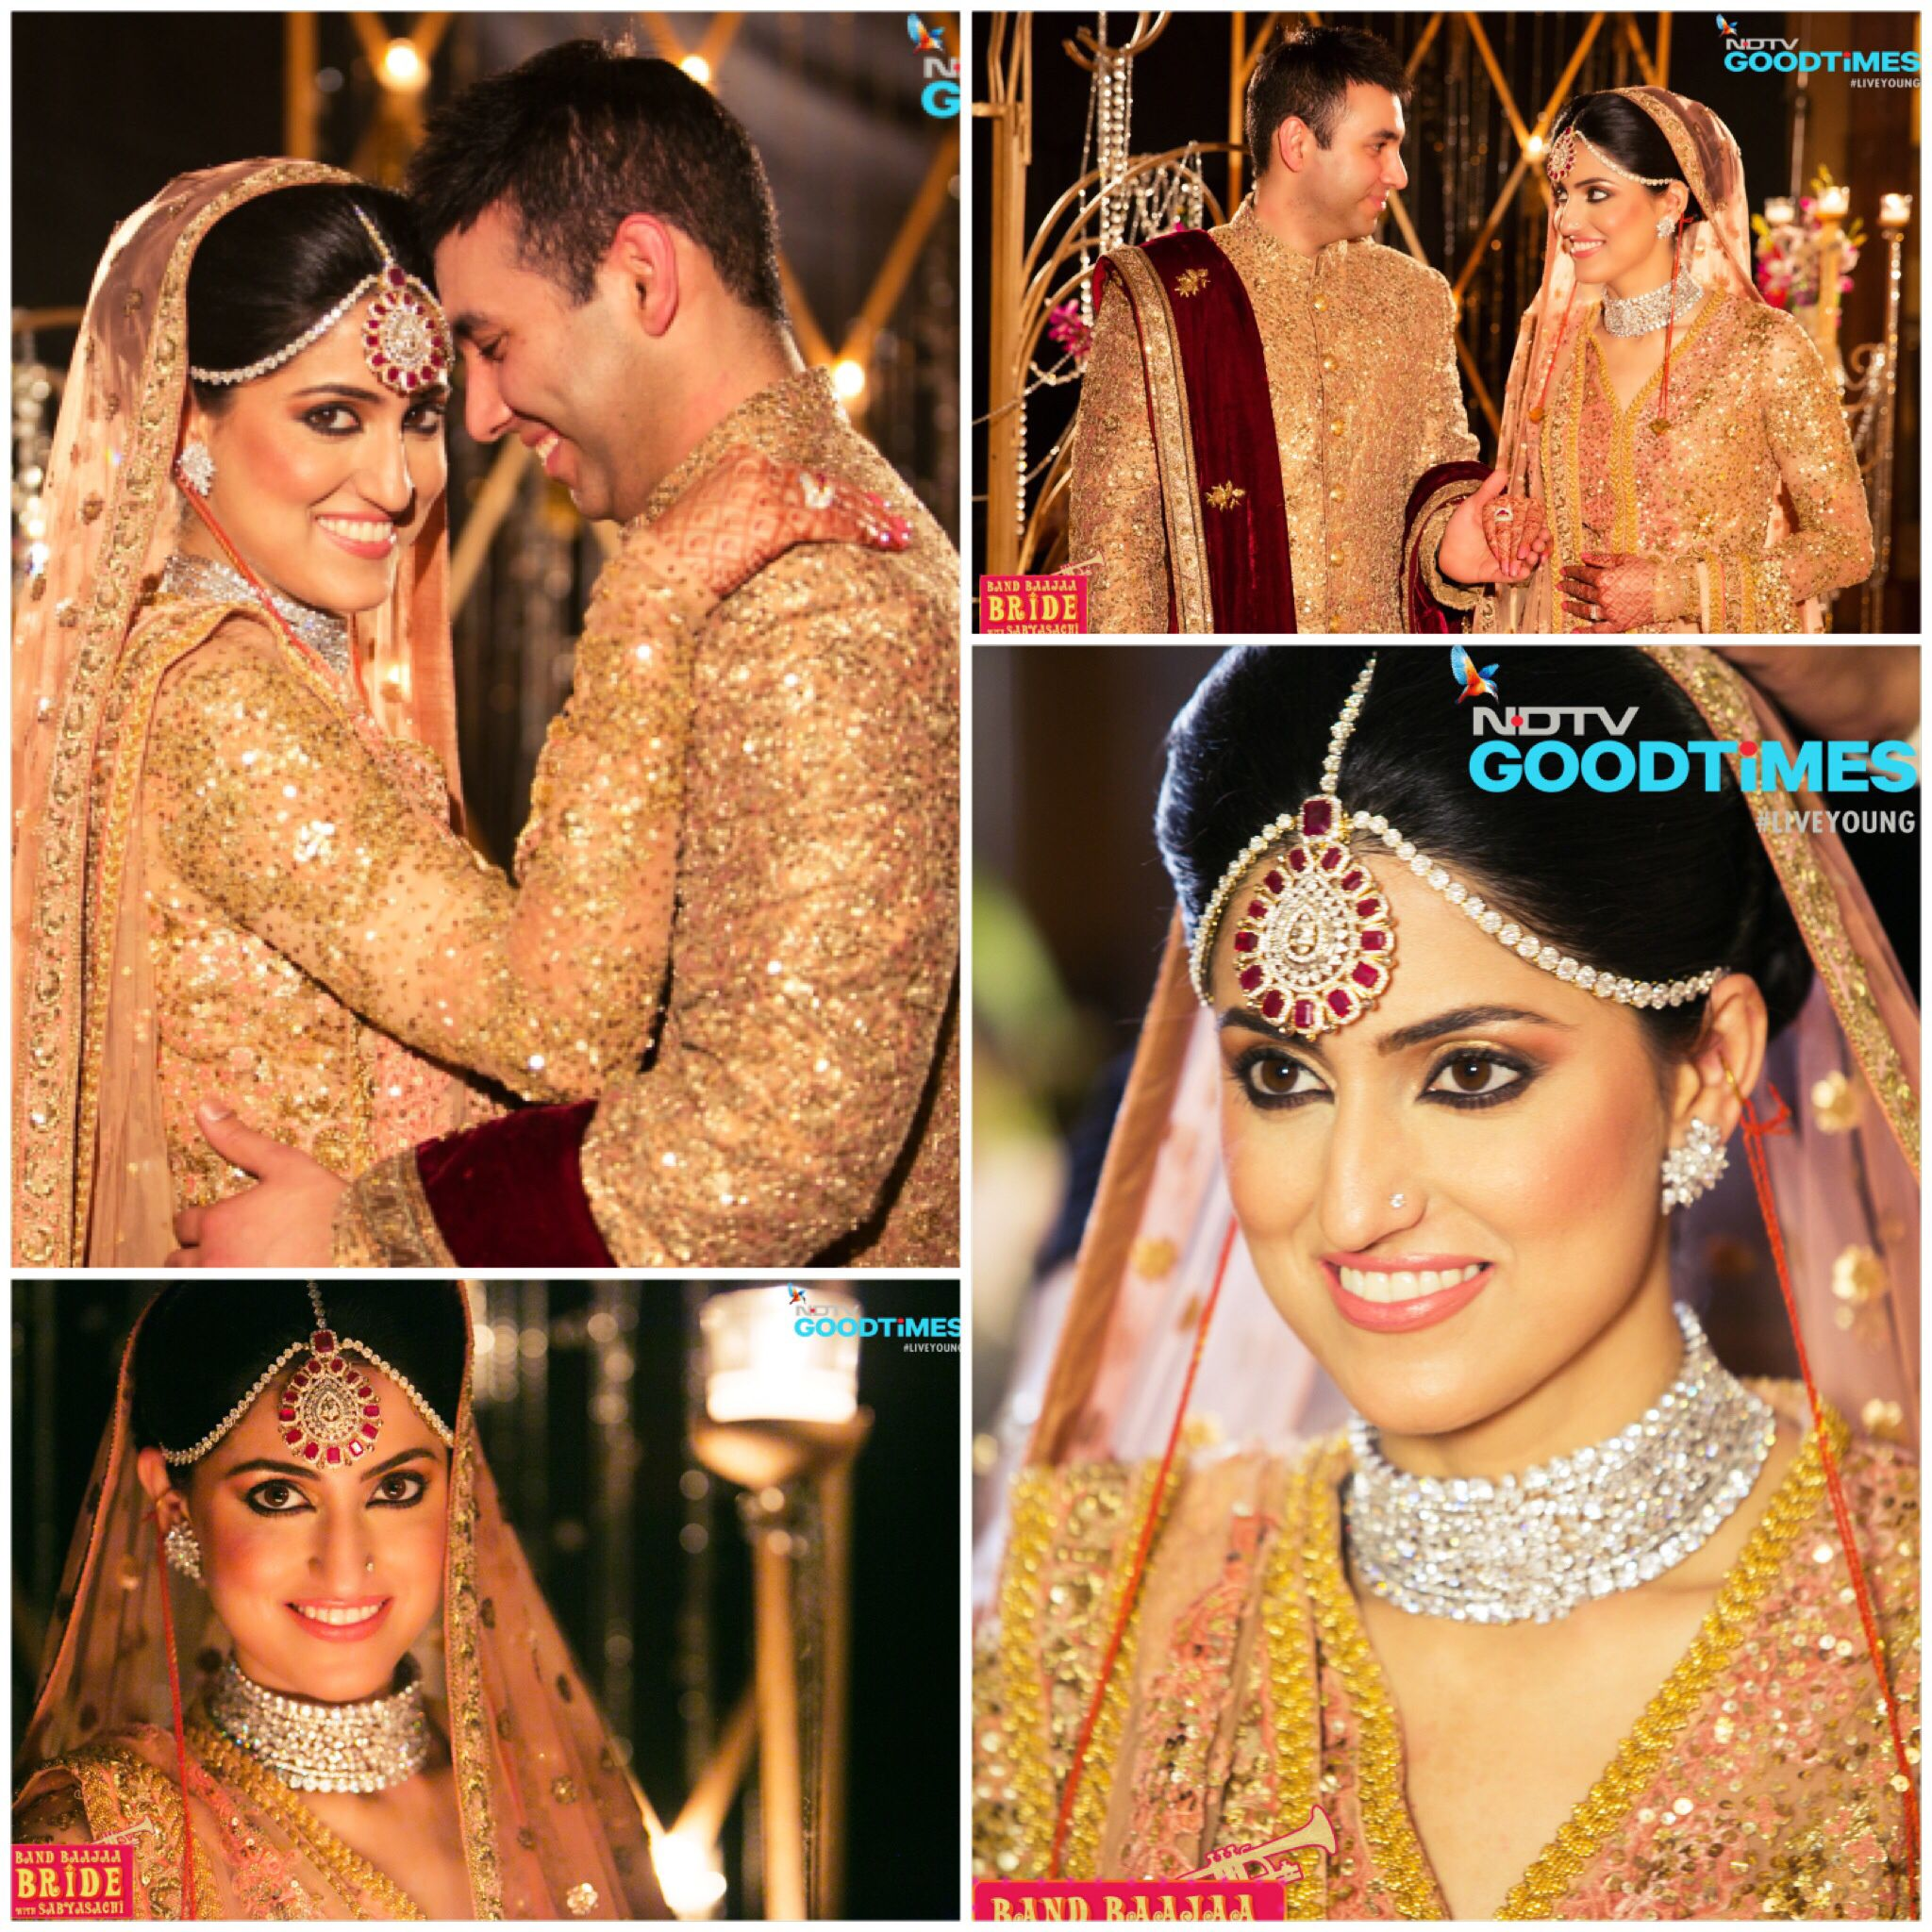 bands glowing into pin band harveen turns a bride punjabi baaja